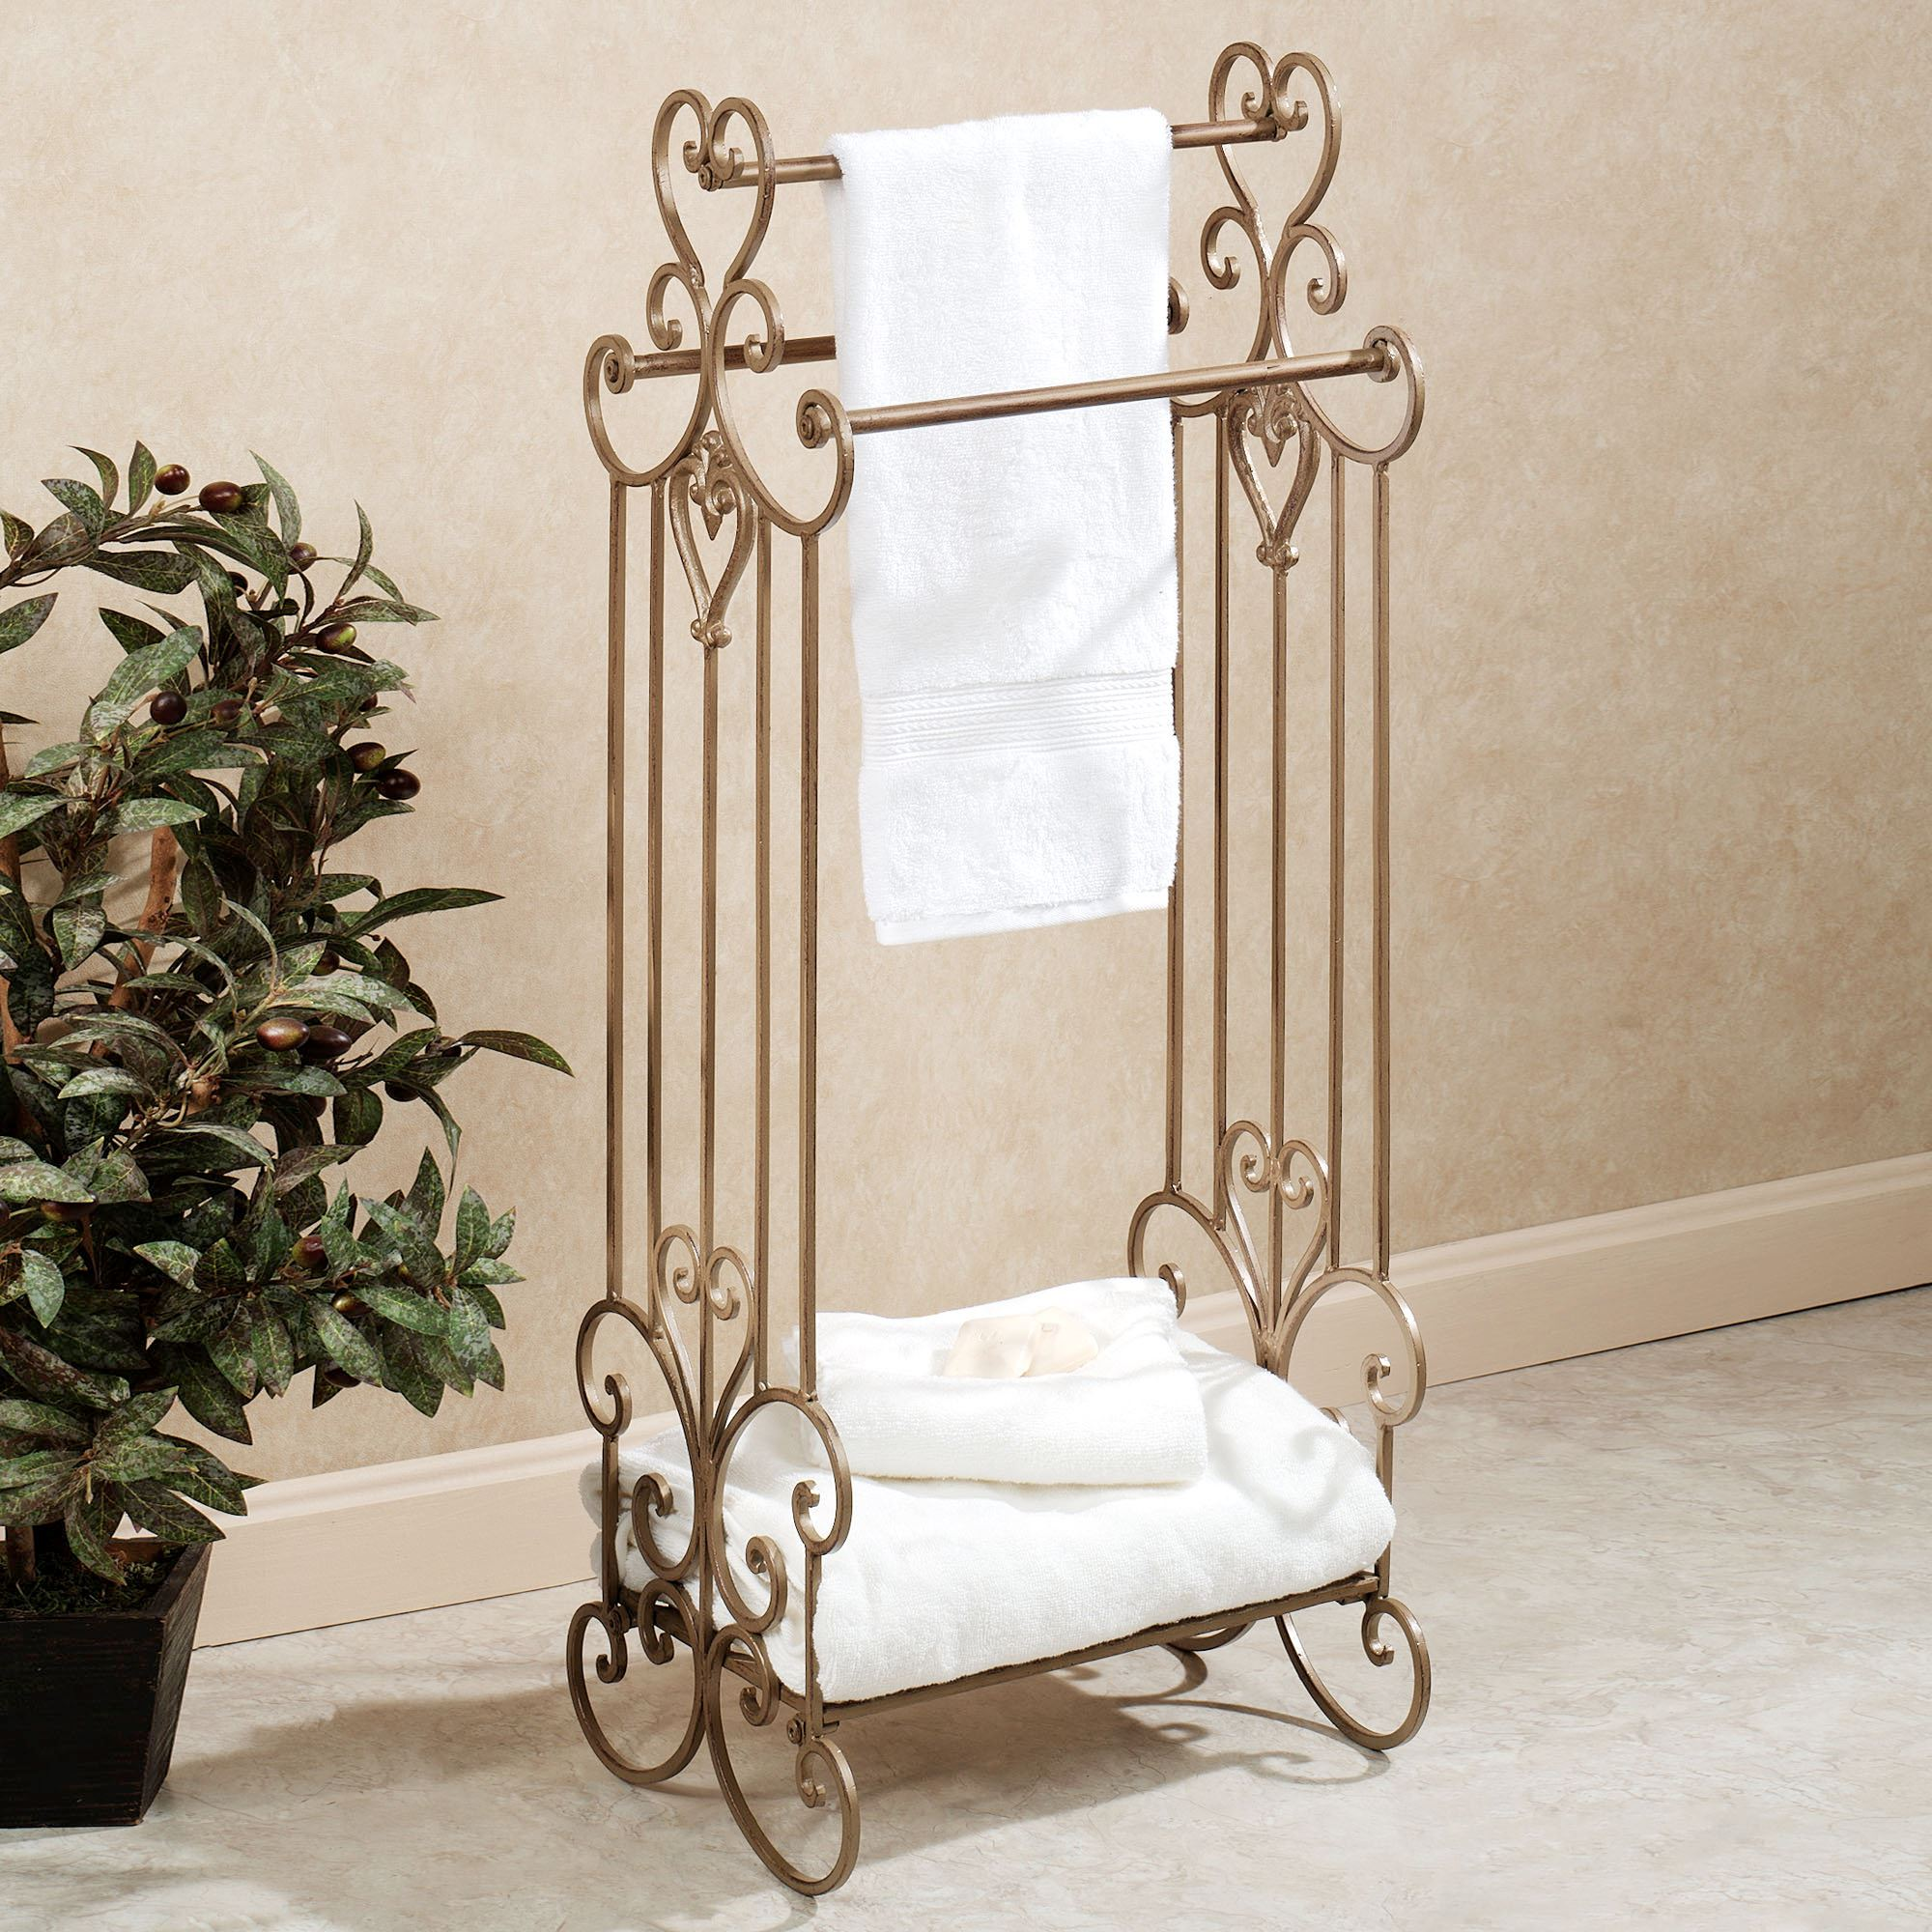 stand alluring ideas fresh com image casadiriposovillaida towel all patio rack room of on discover family design decoration